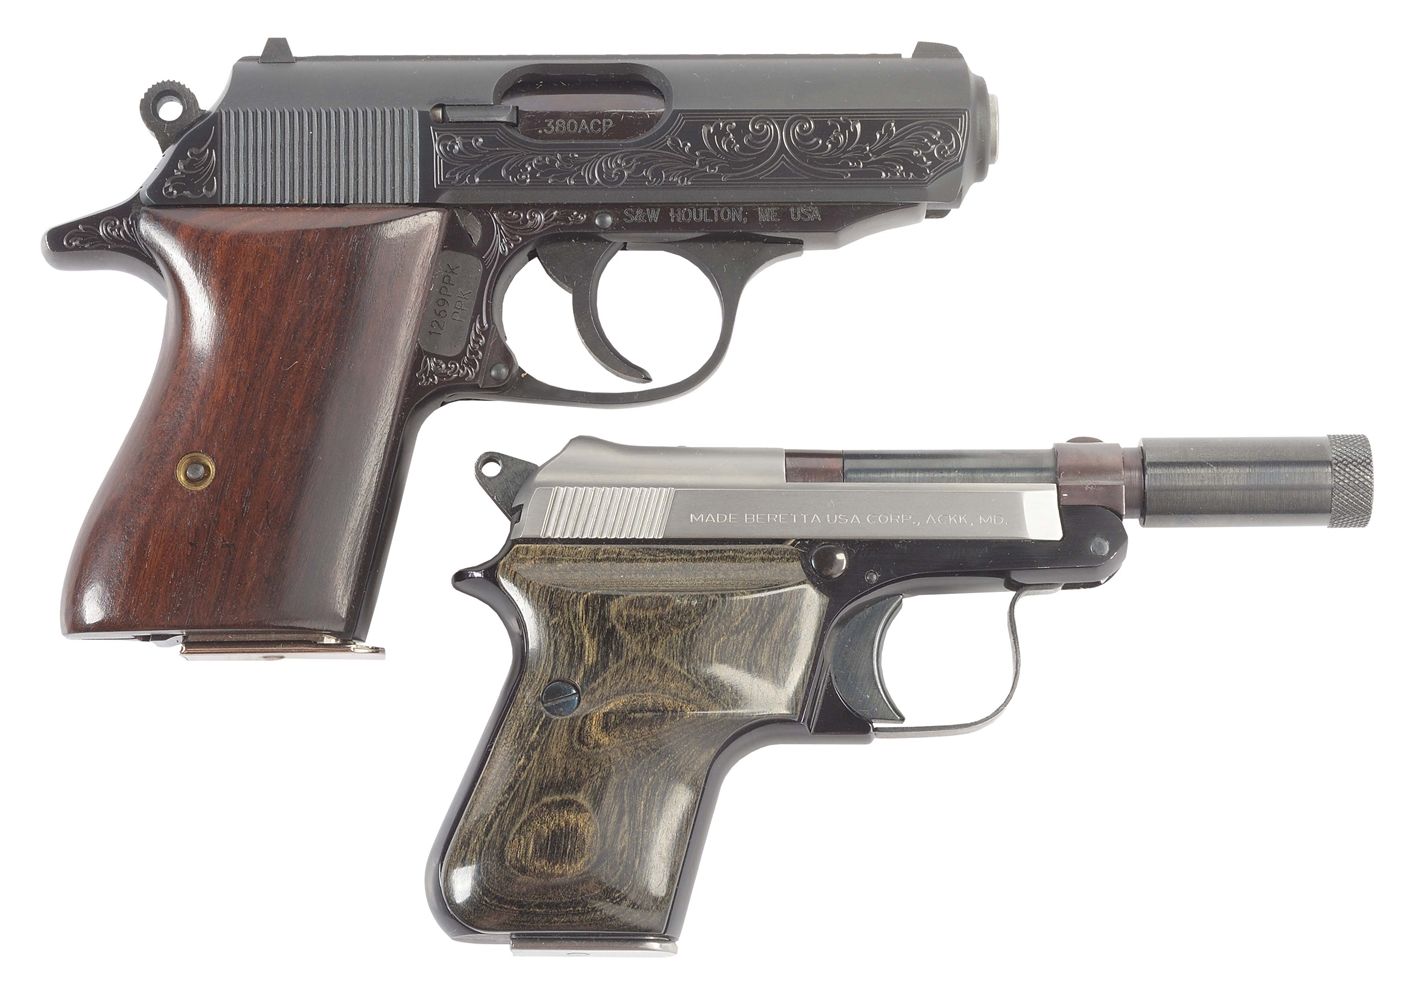 (C) LOT OF TWO: WALTHER PPK AND BERETTA 950BS SEMI AUTOMATIC PISTOLS.